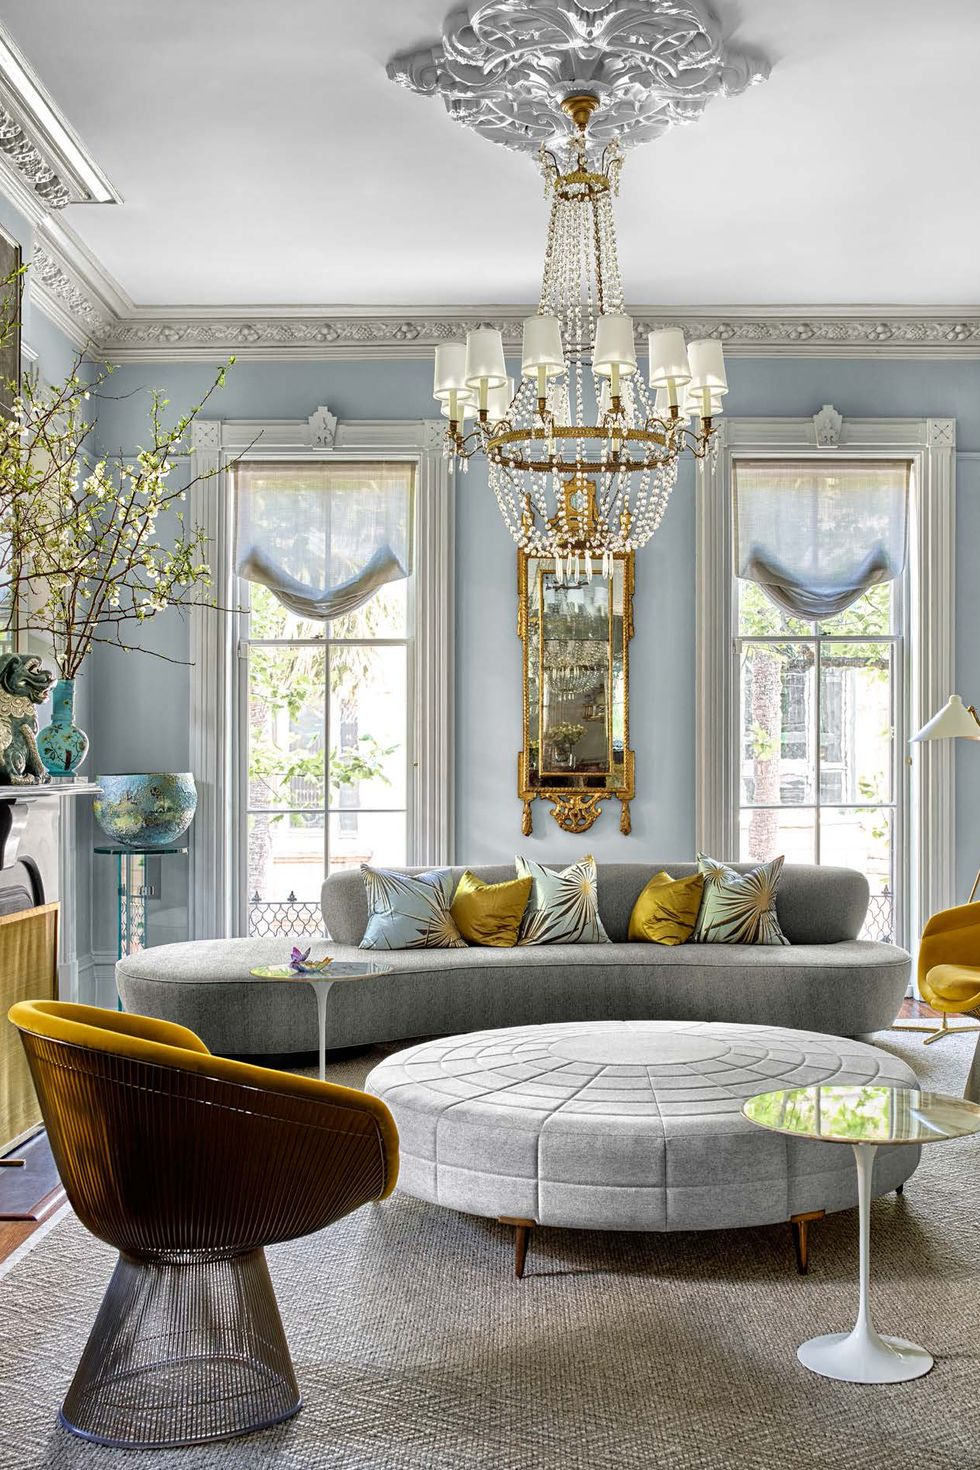 Townhouse Living Room Design: Inside A Stunning Italianate Townhouse In Savannah